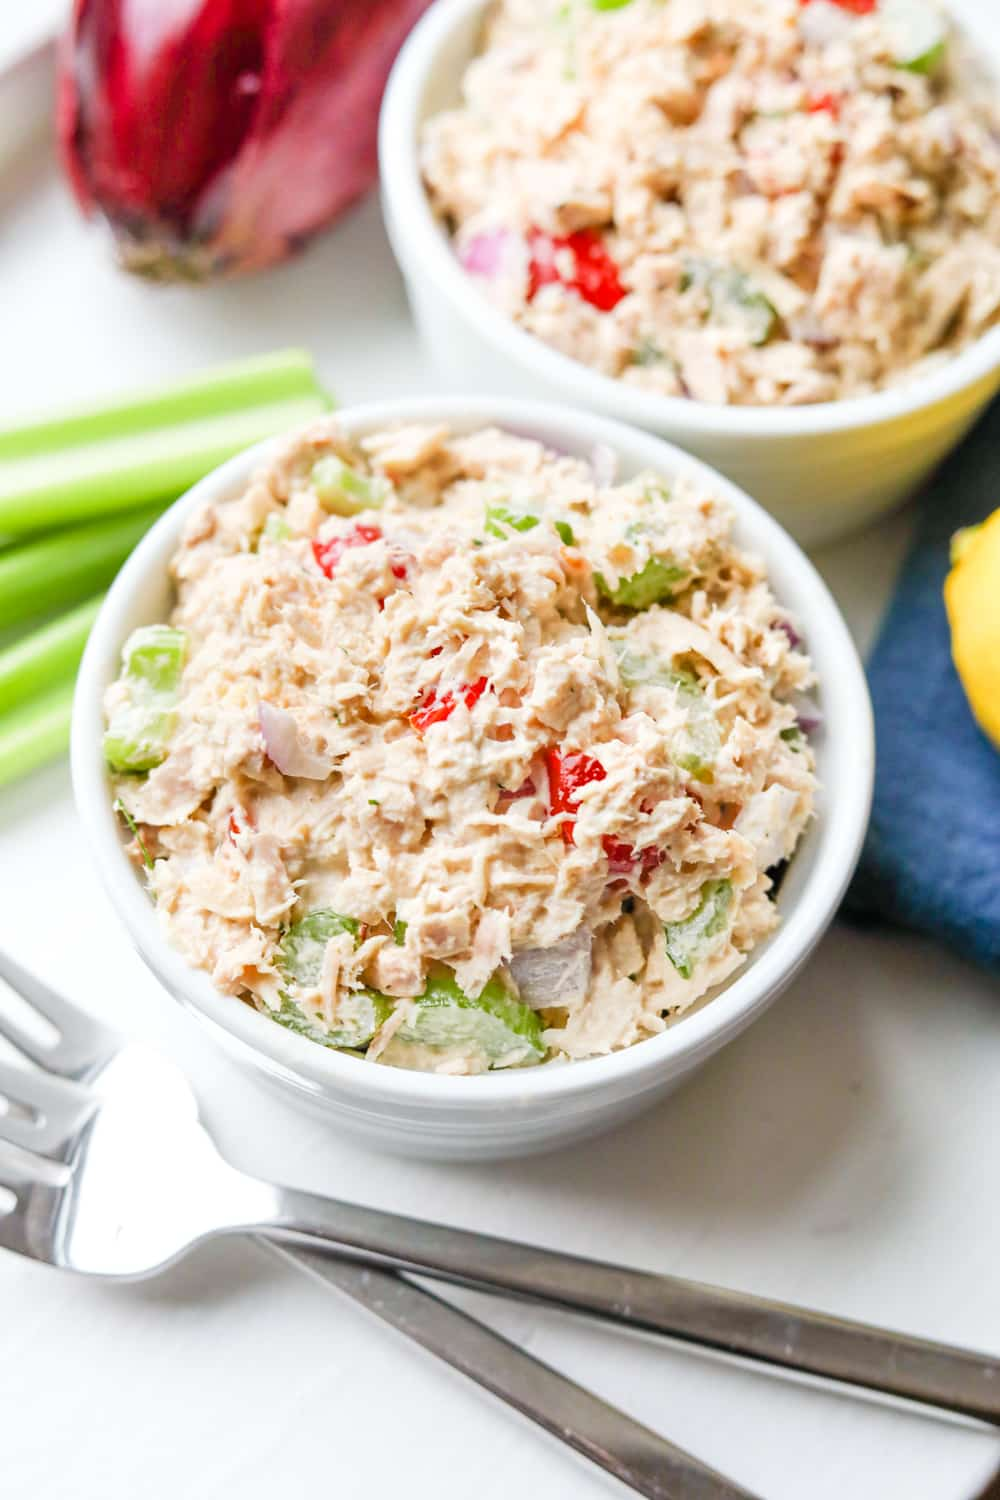 2 Bowls of tuna salad with and onion, lemon, celery, and forks next to them.